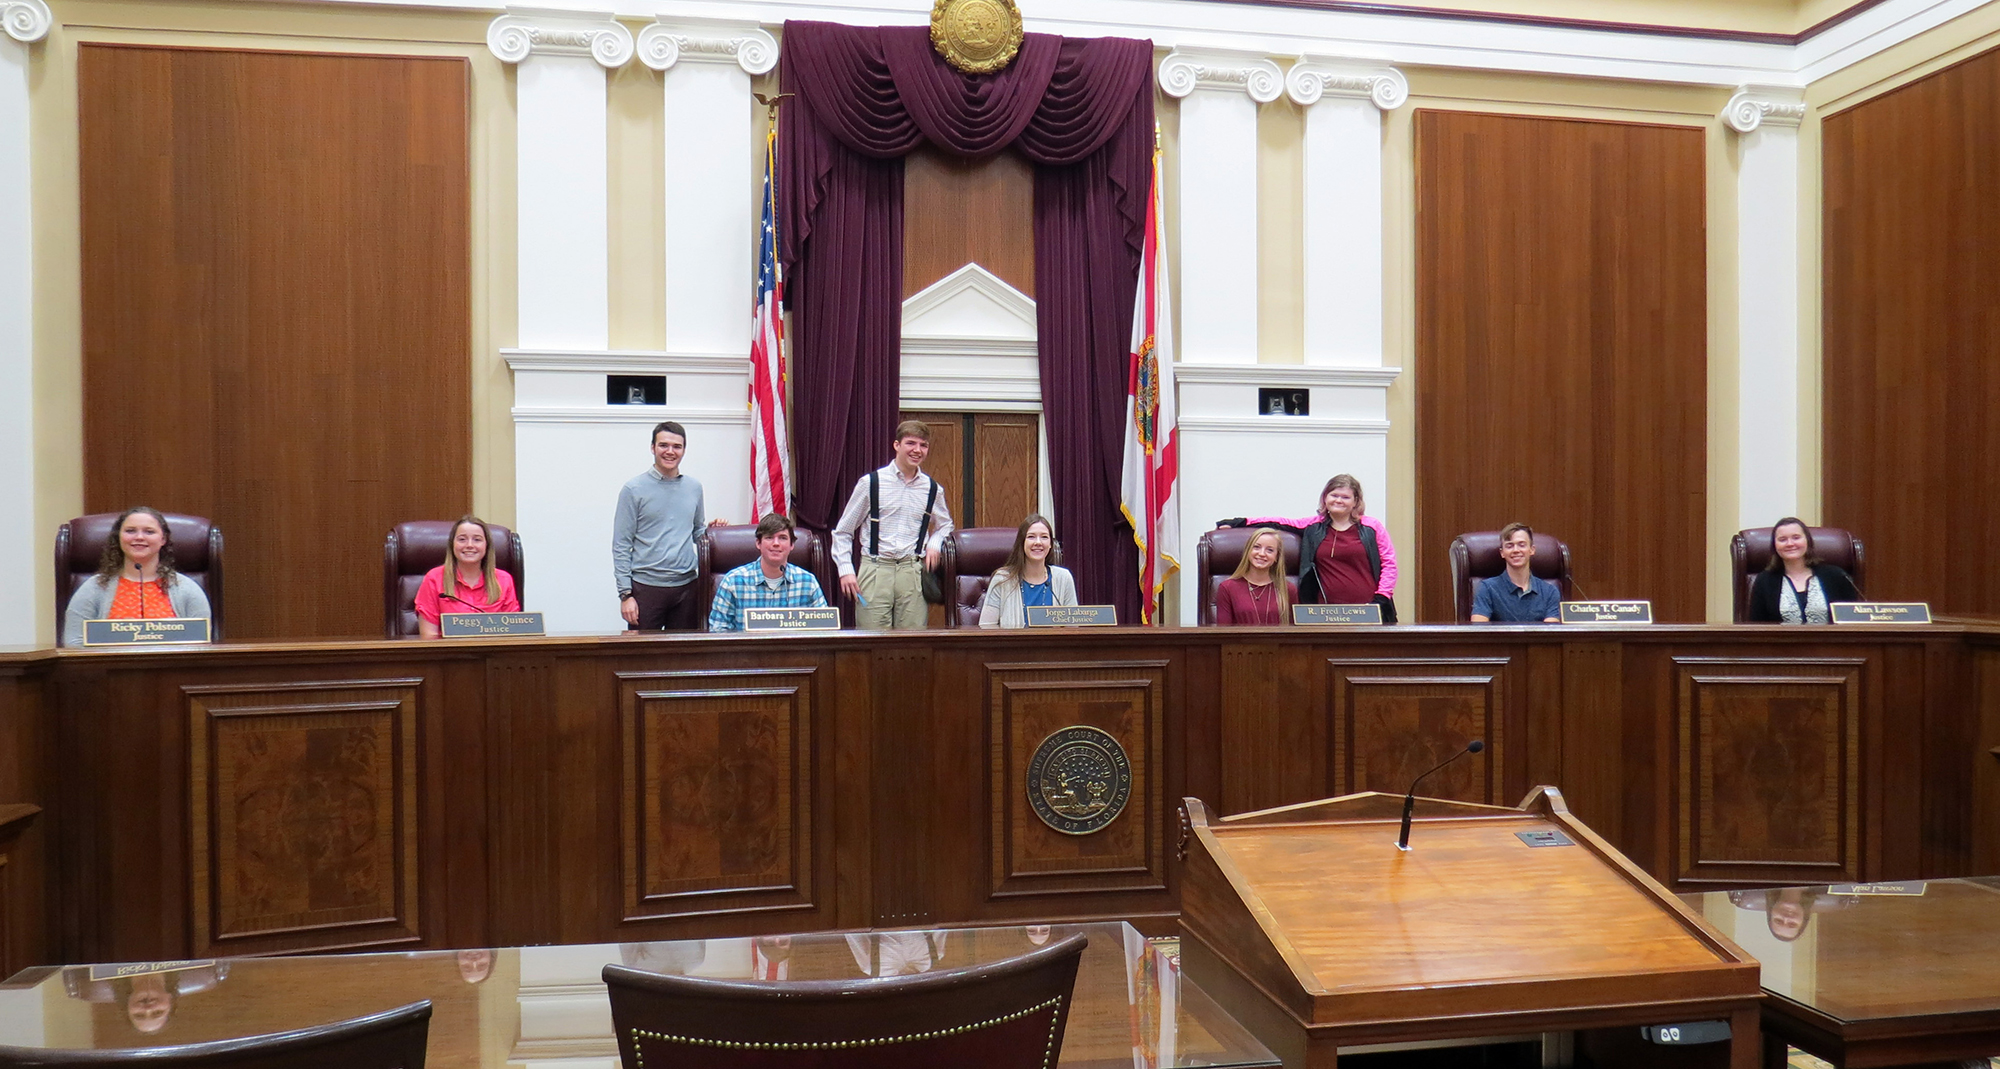 students part of Youth Tour in chambers